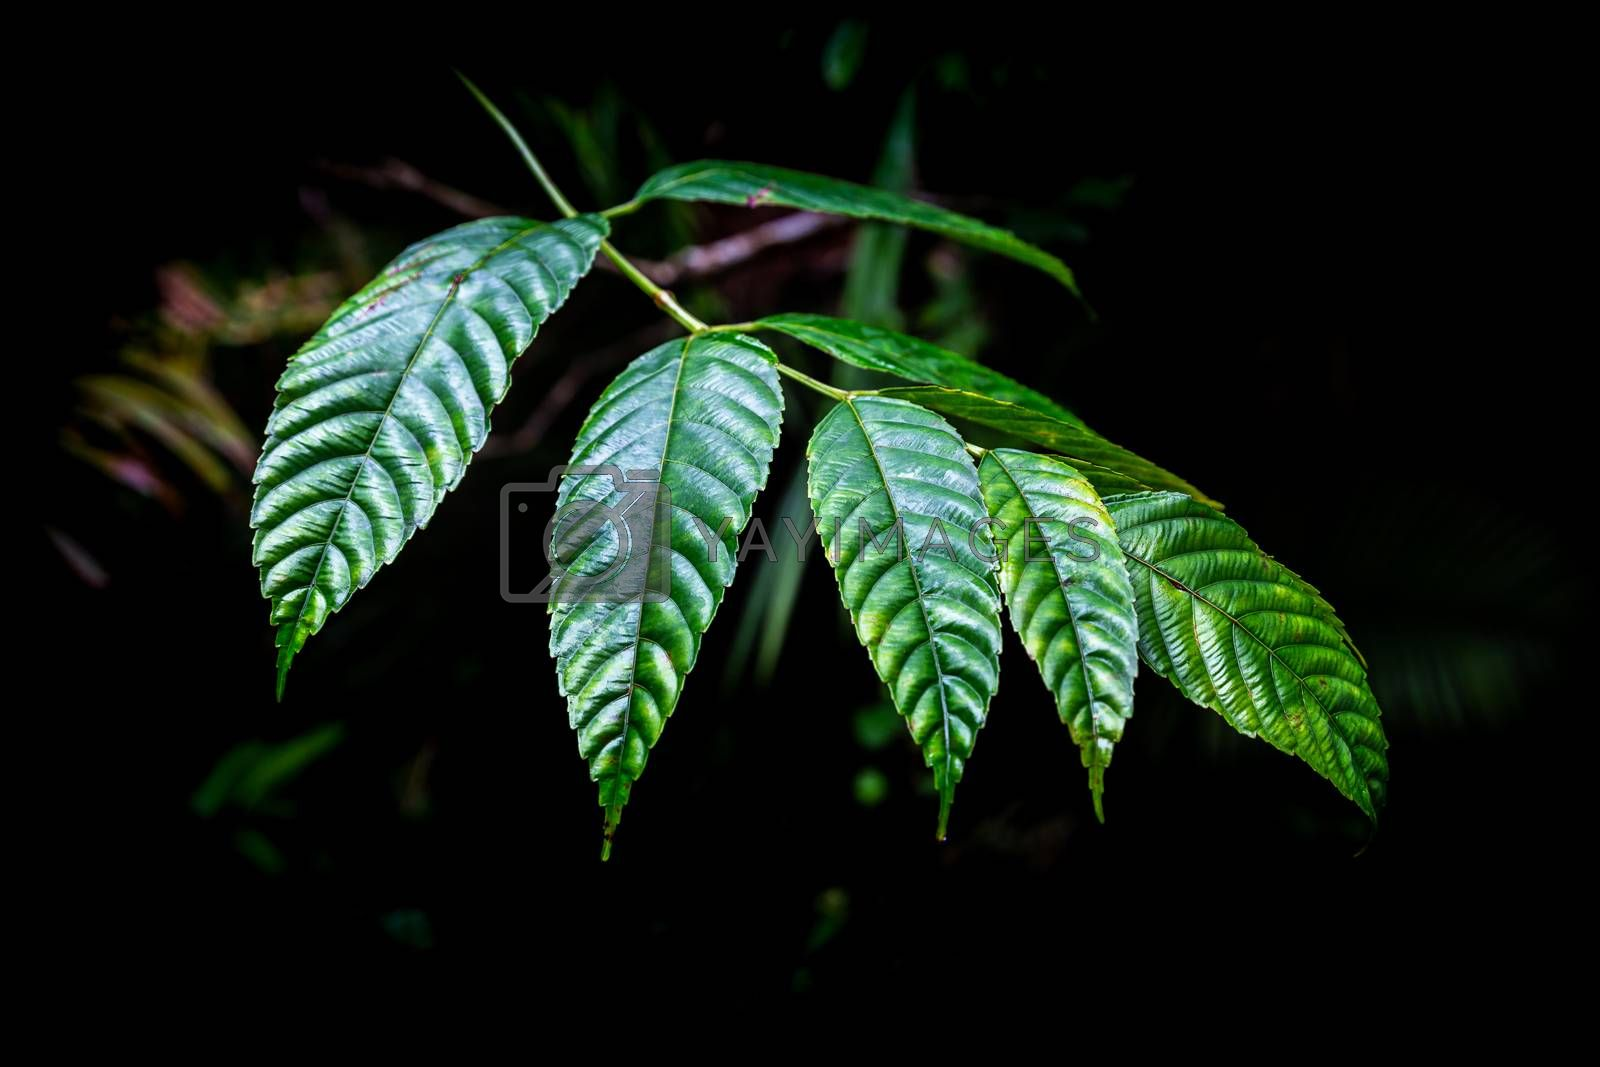 Green leaves of tropical plant with dark background inside rainforest.